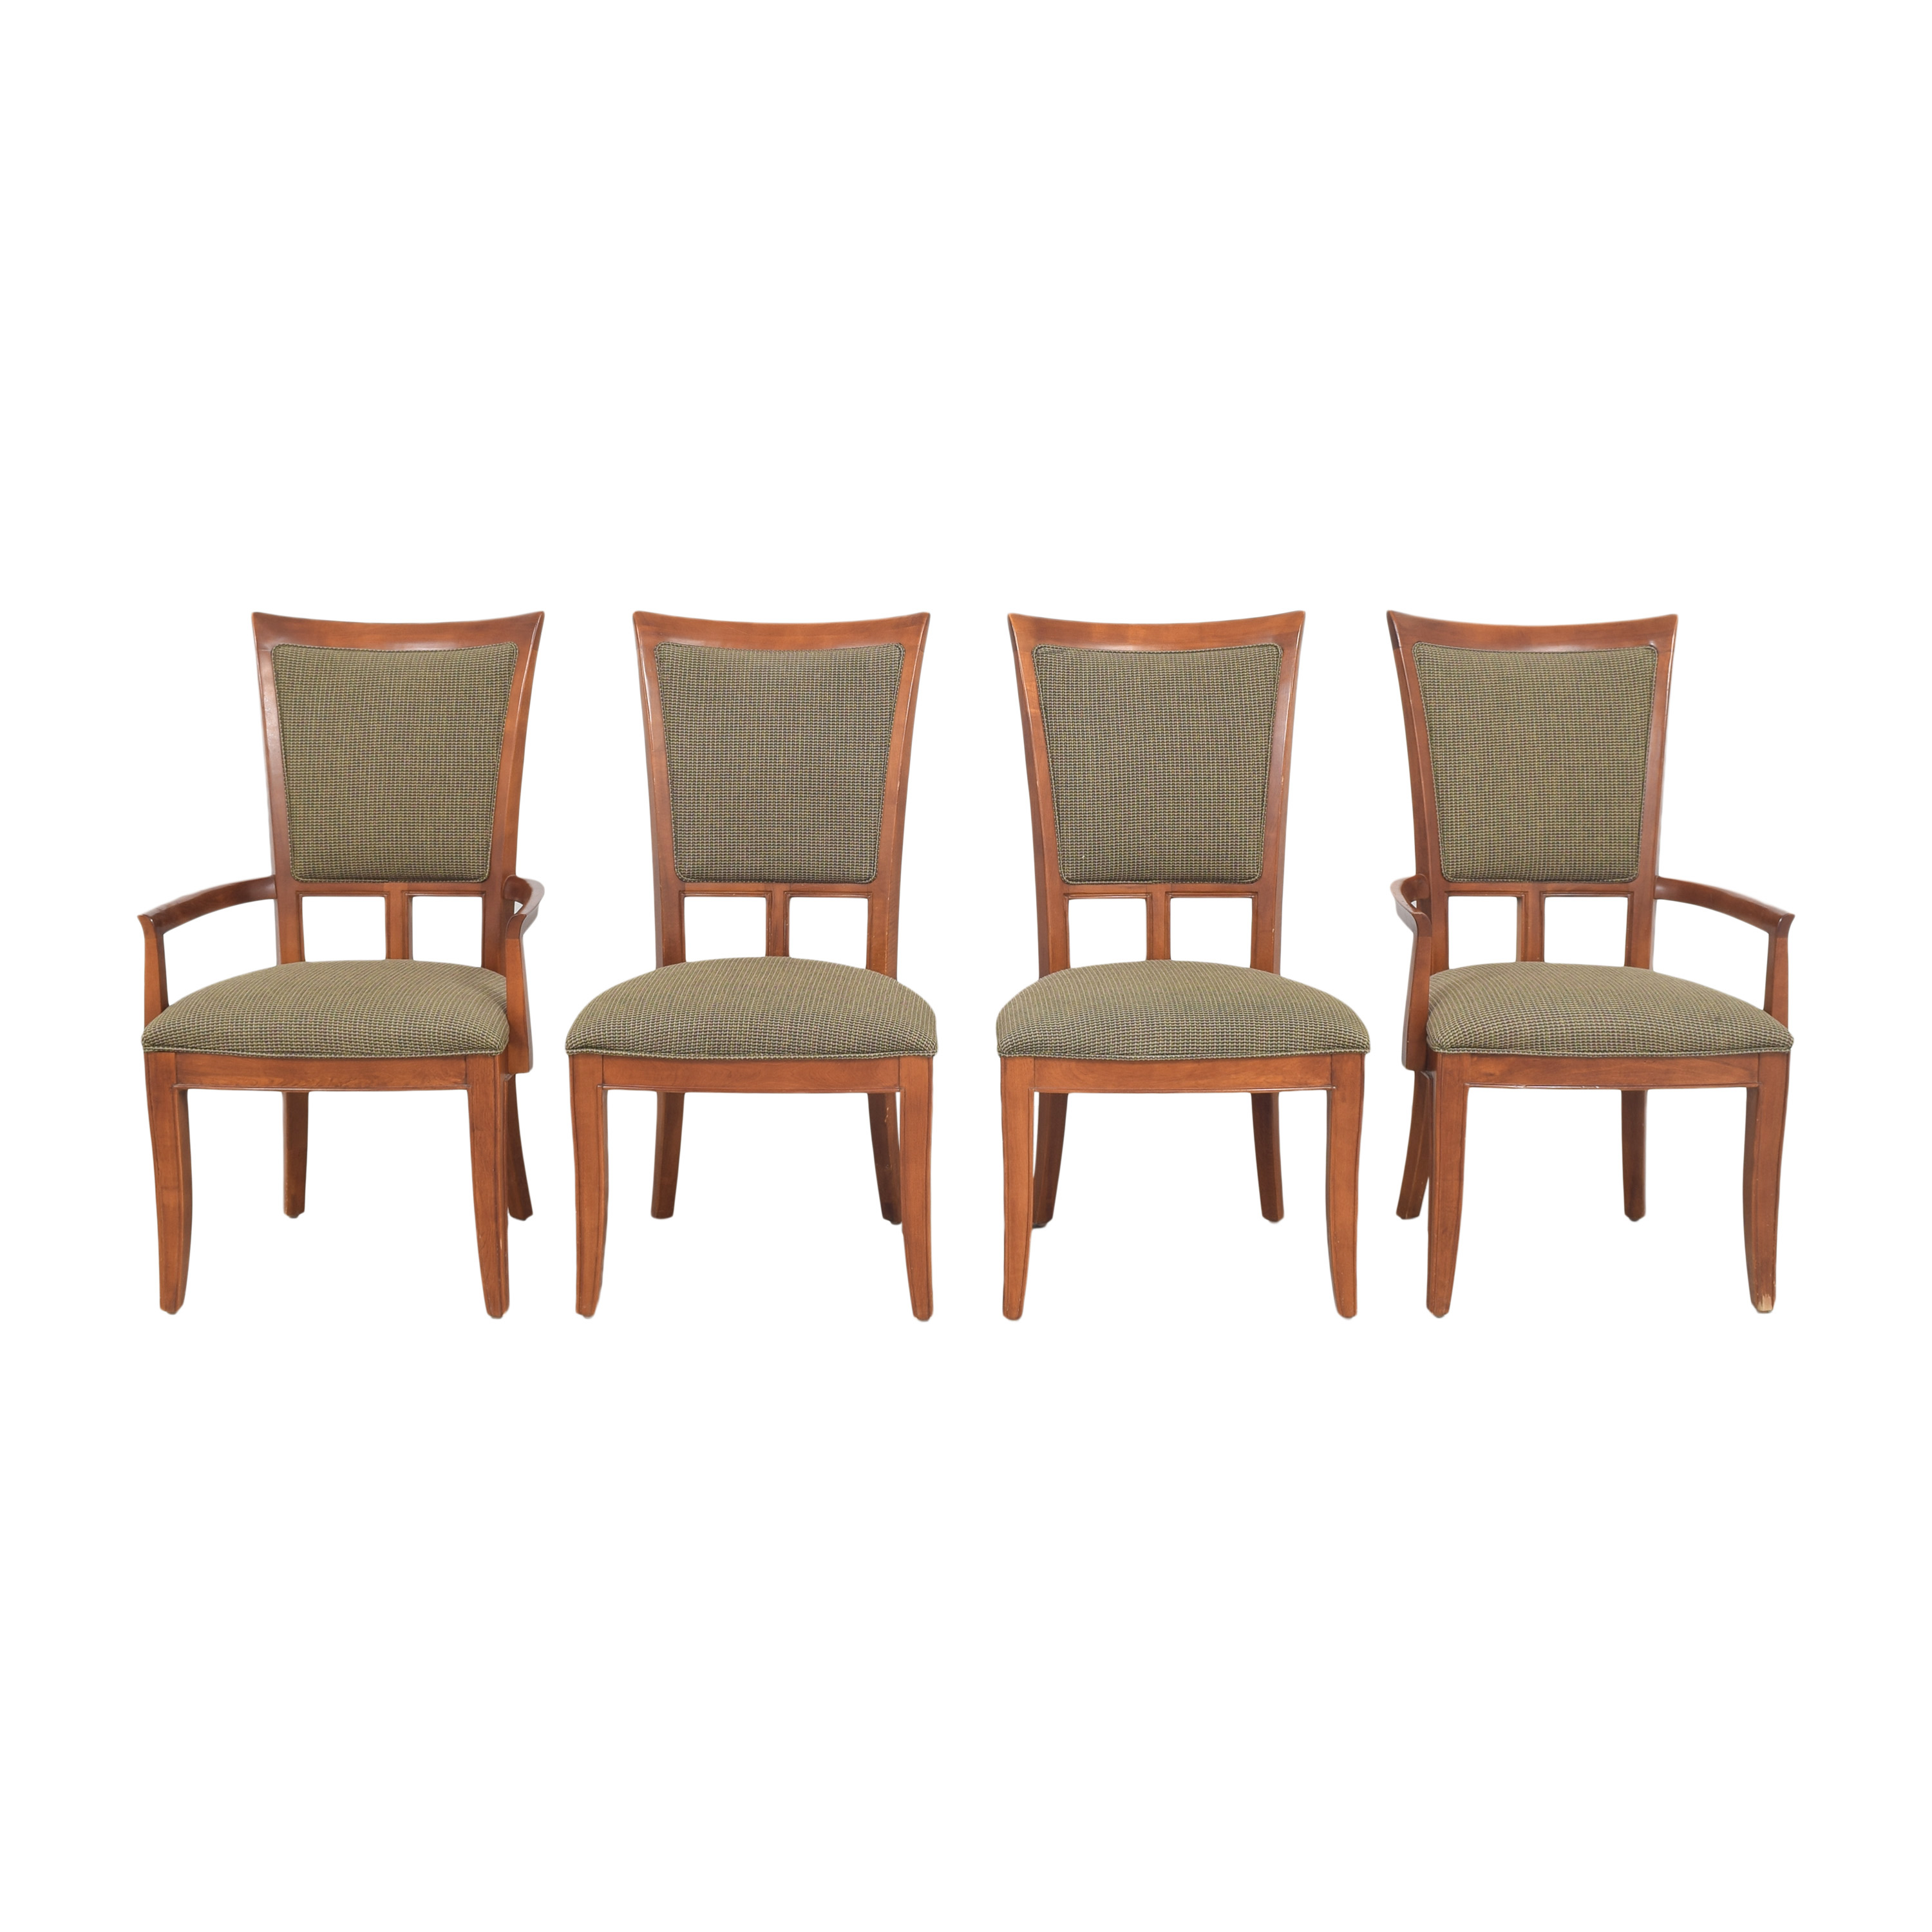 Stanley Furniture Stanley Furniture Upholstered Dining Chairs dimensions